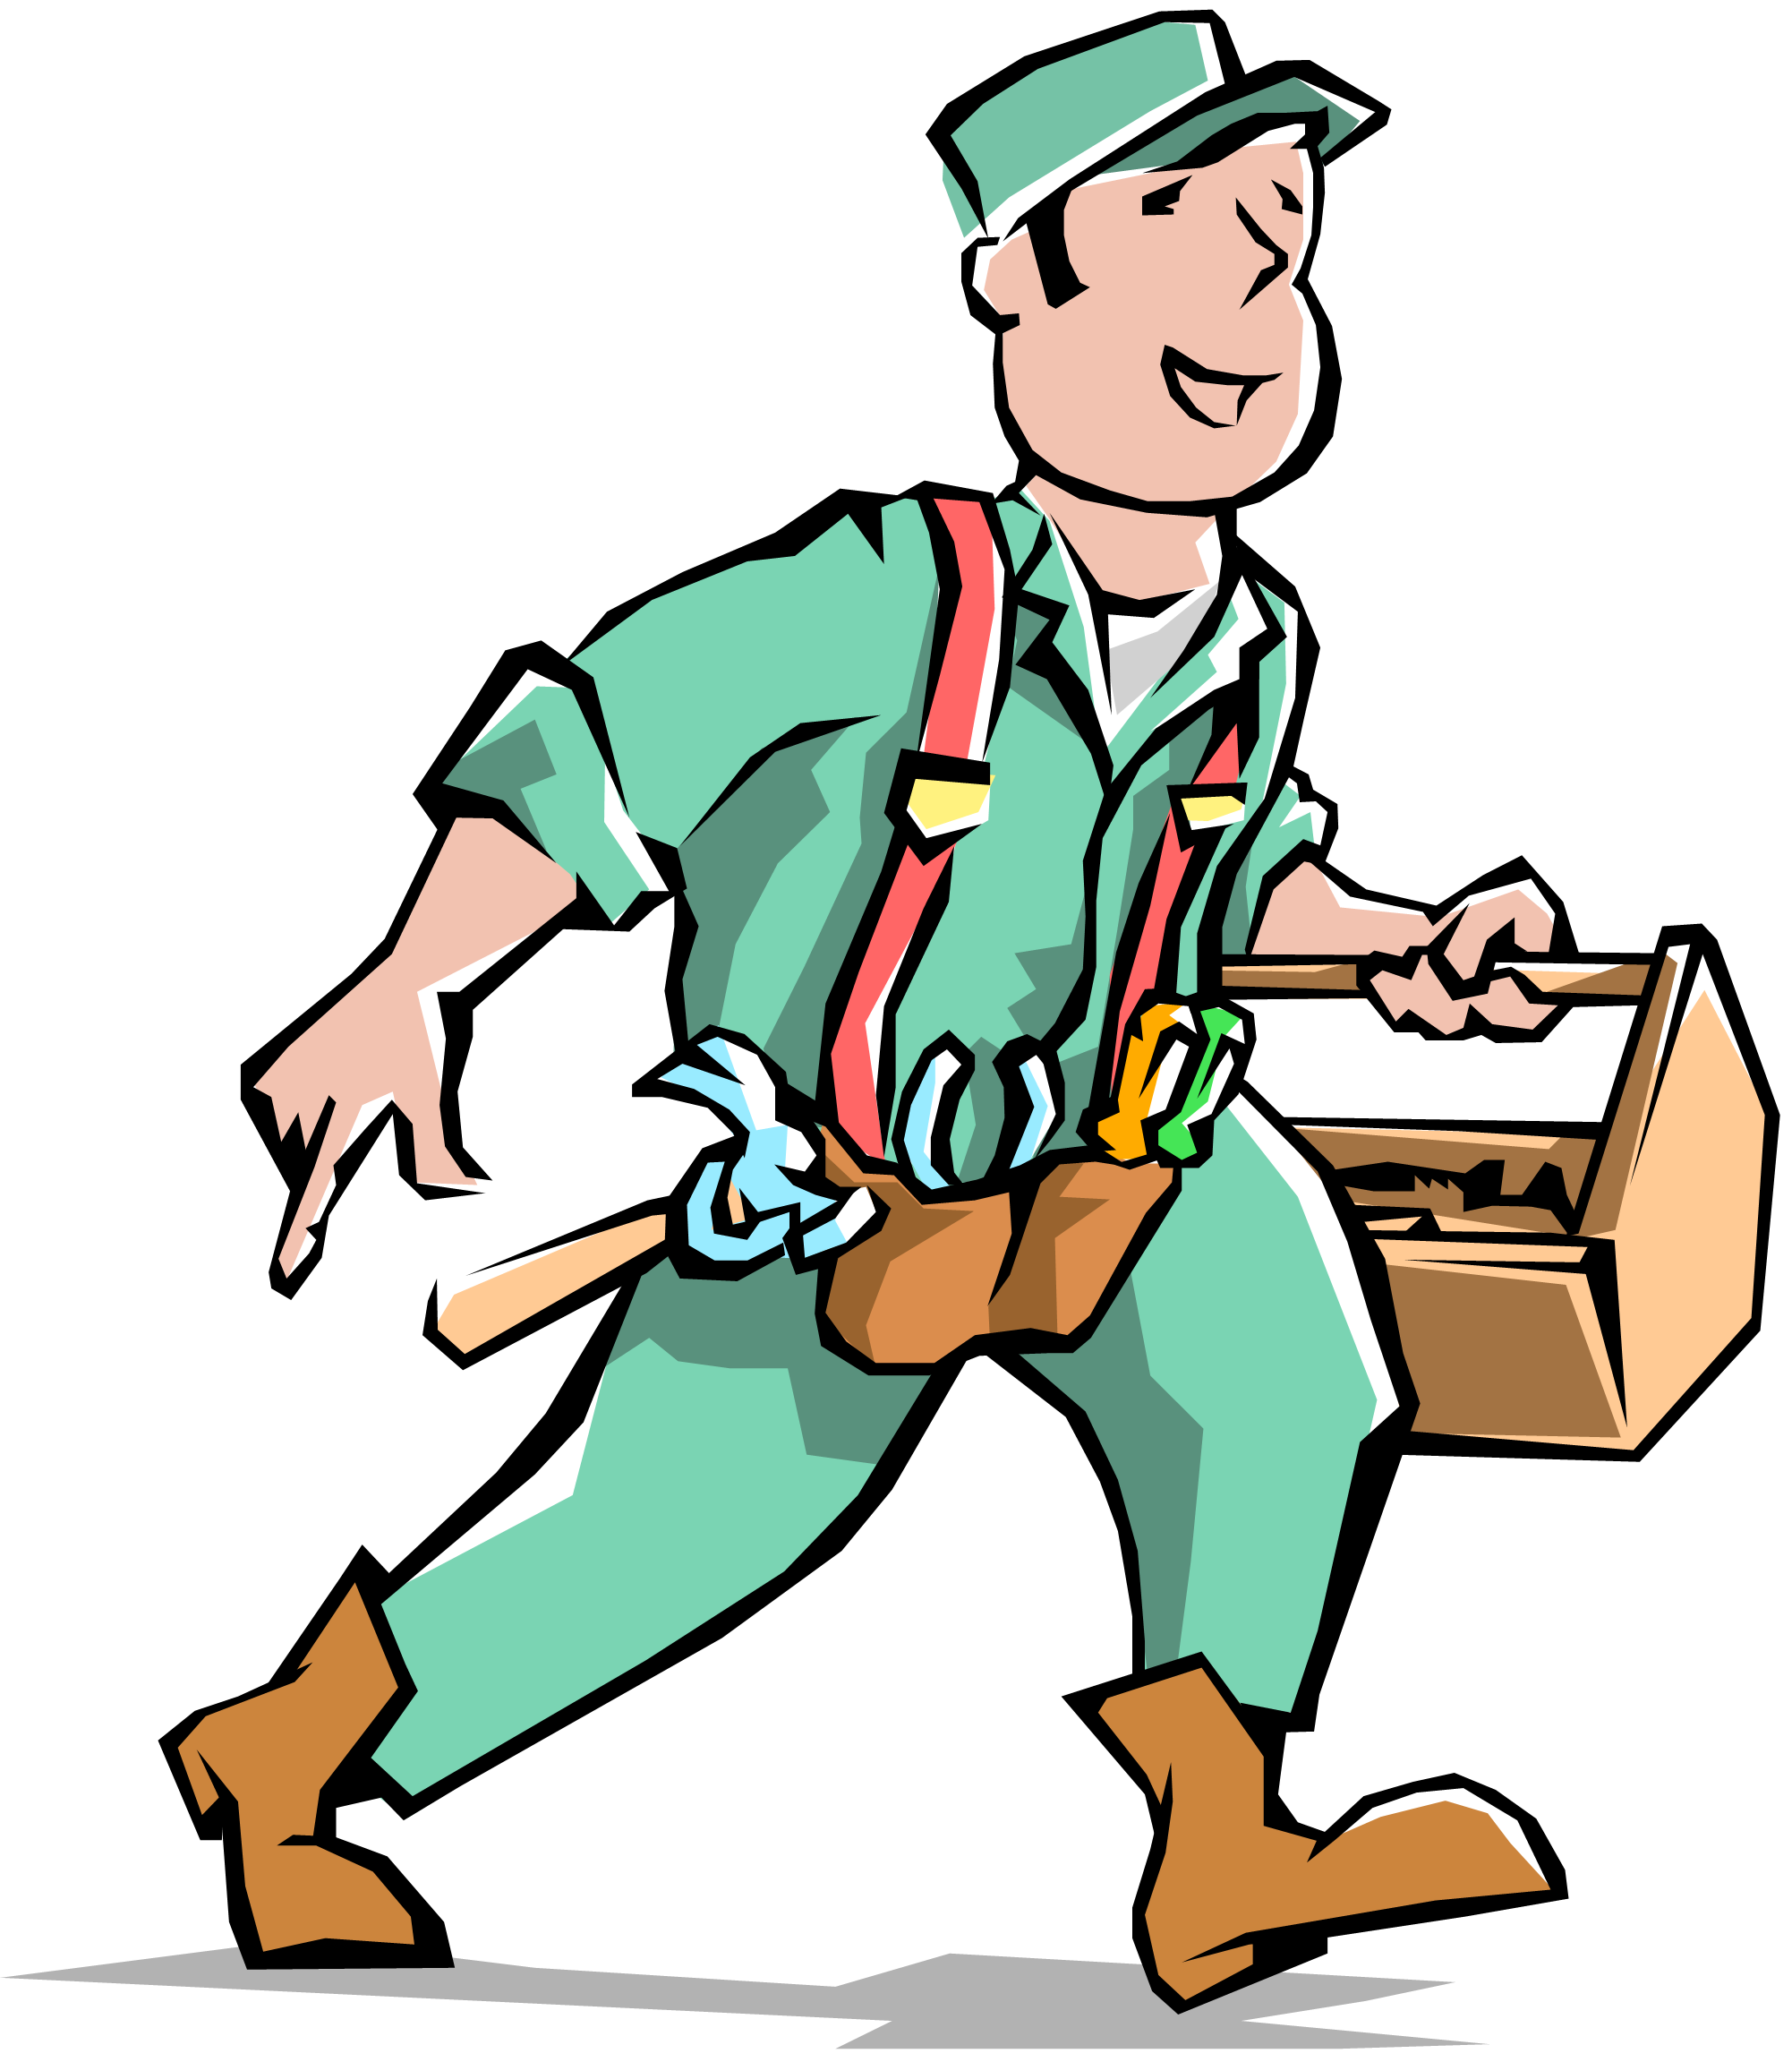 Services clip art clipart images gallery for free download.